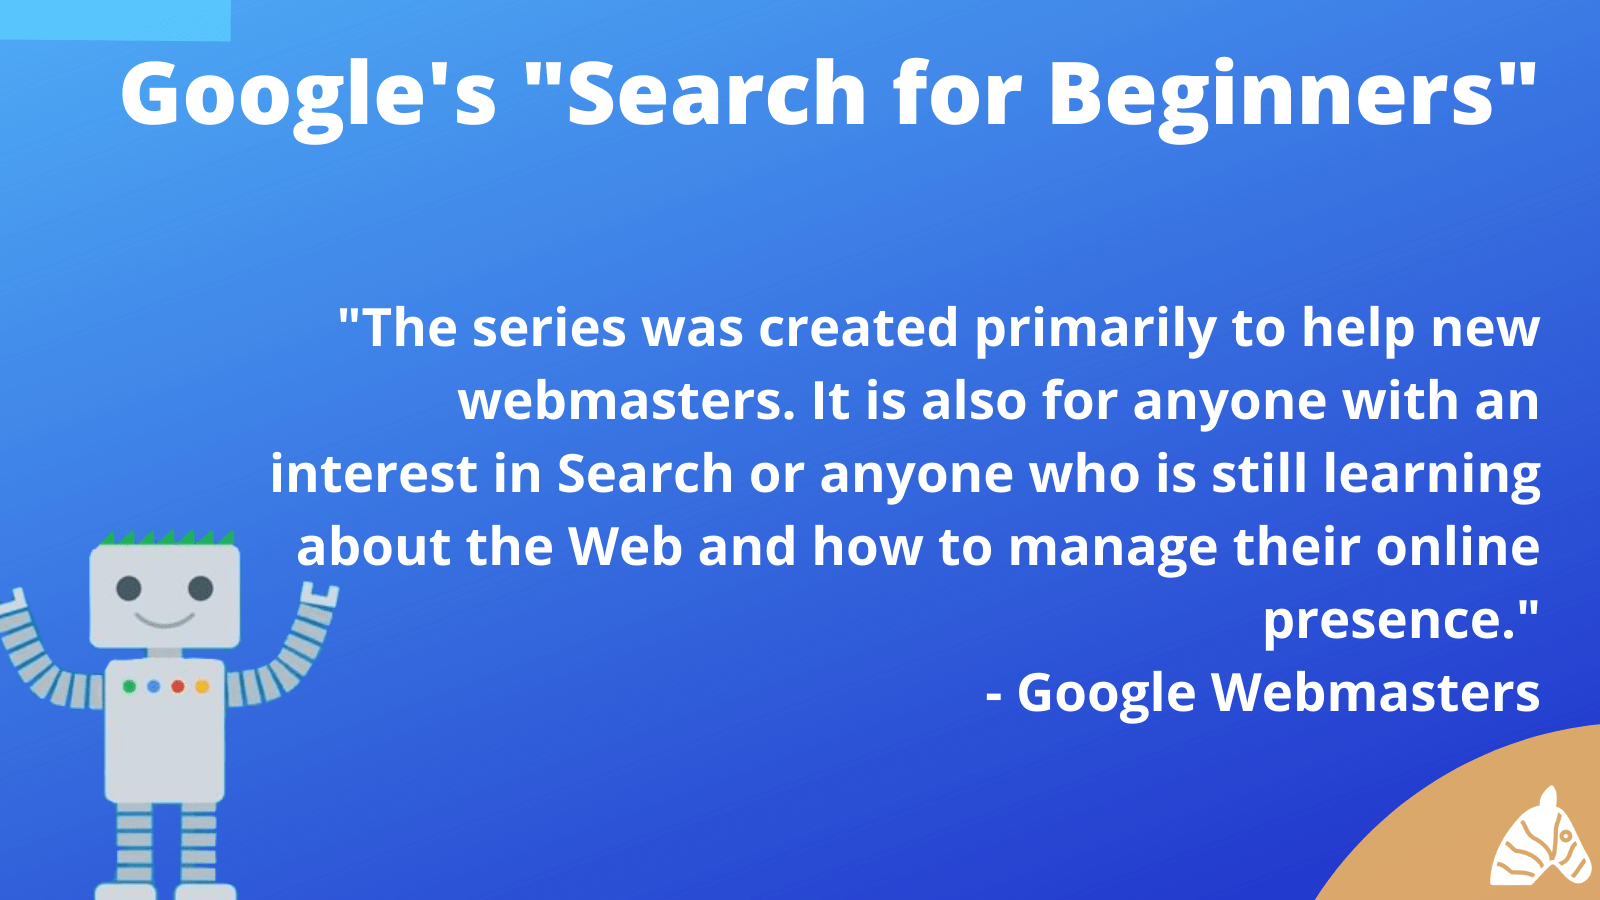 search for beginners tip from Google webmaster tools